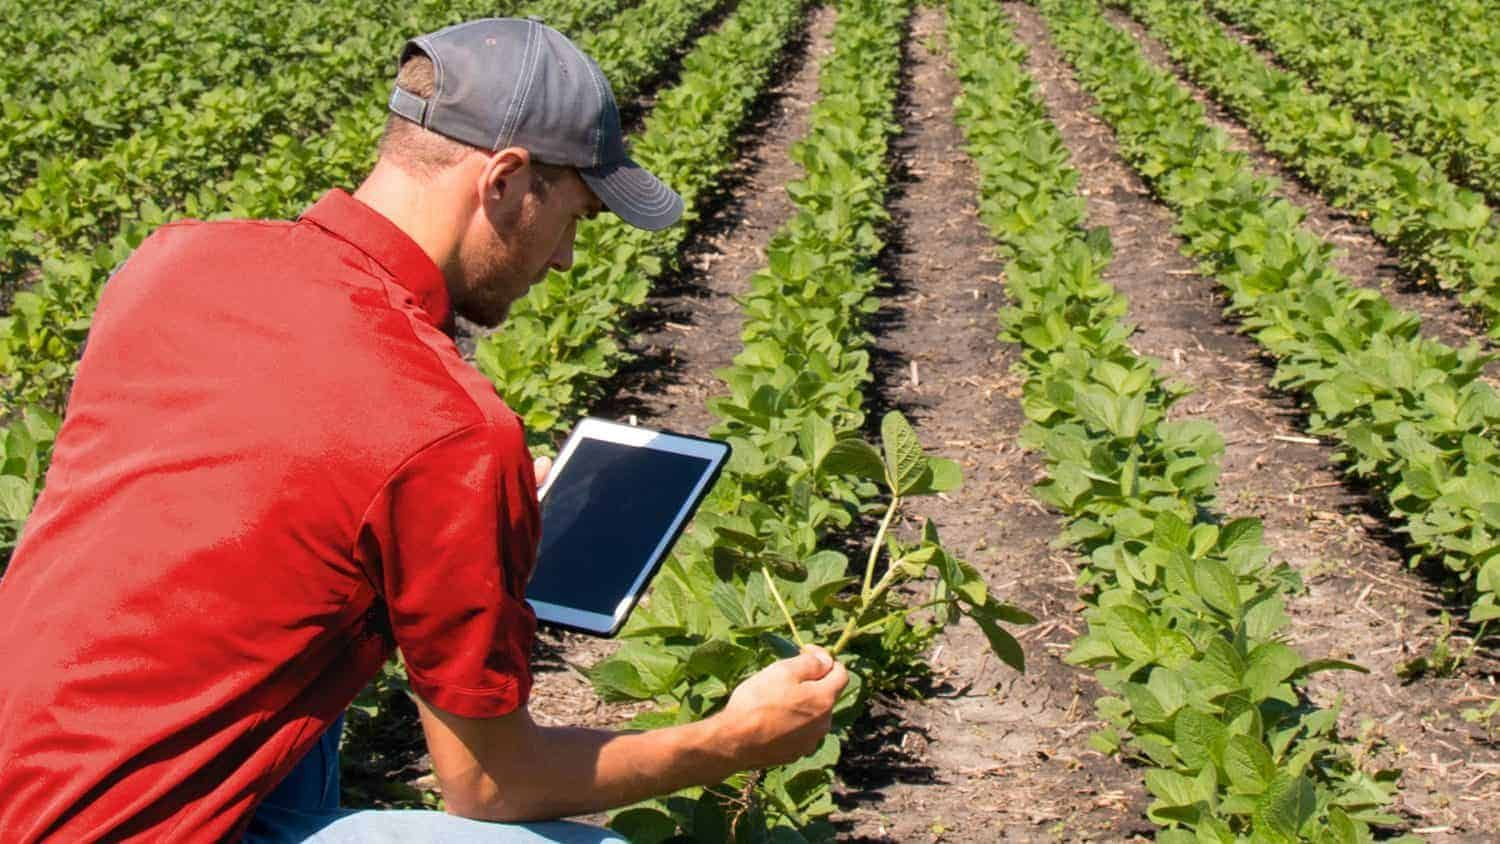 Agricultural professionals are needed today more than ever